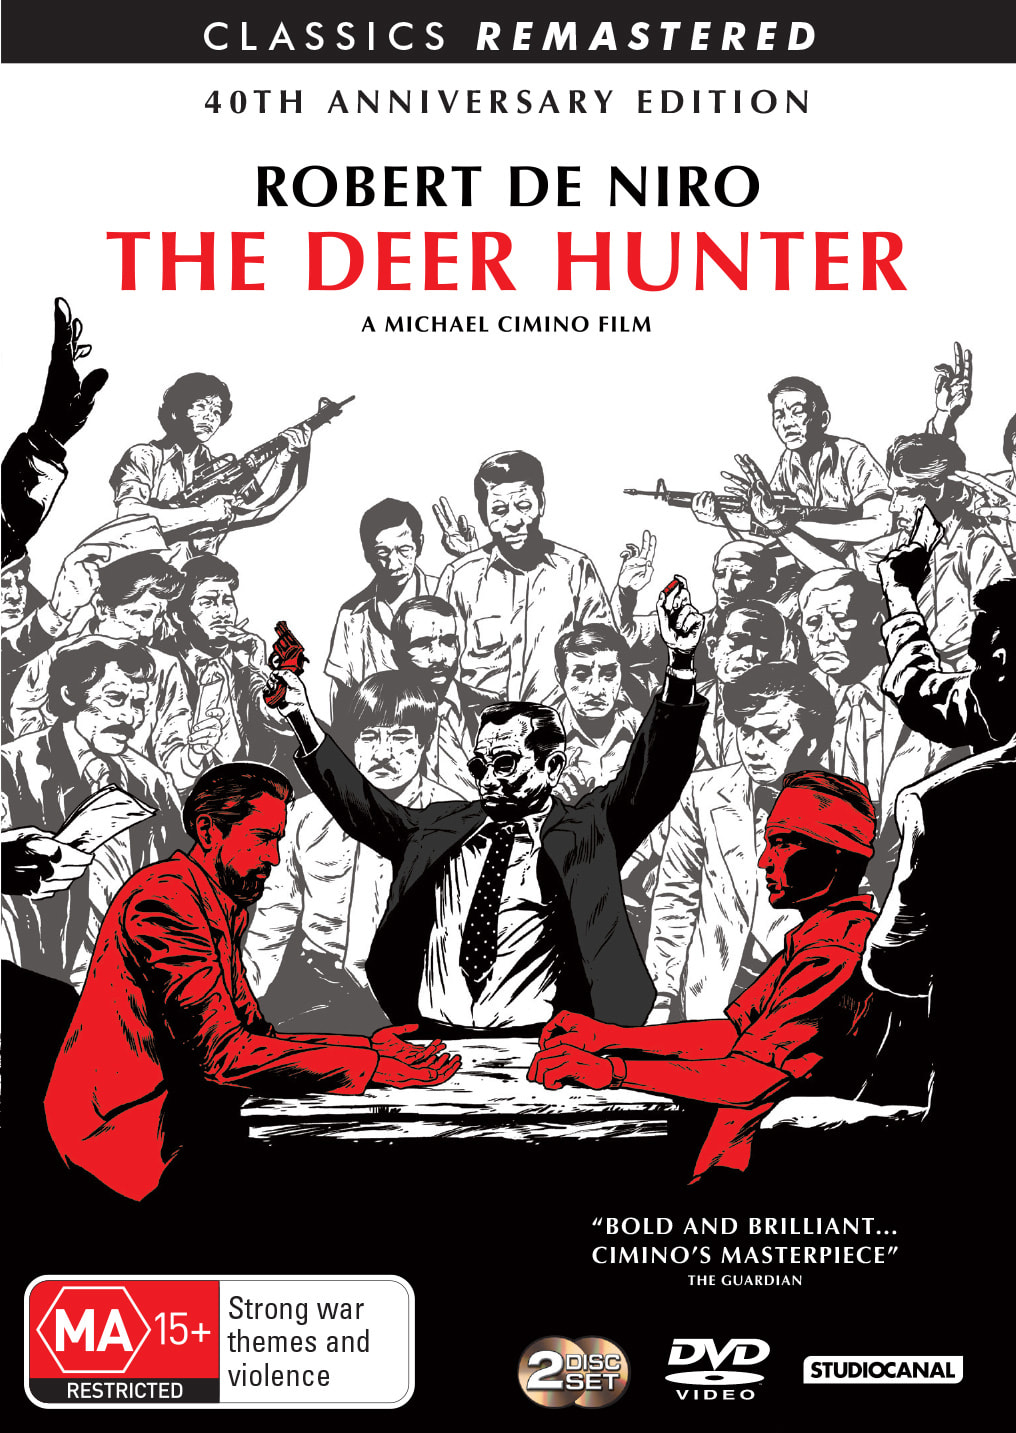 The Deer Hunter (40th Anniversary Edition) [DVD]